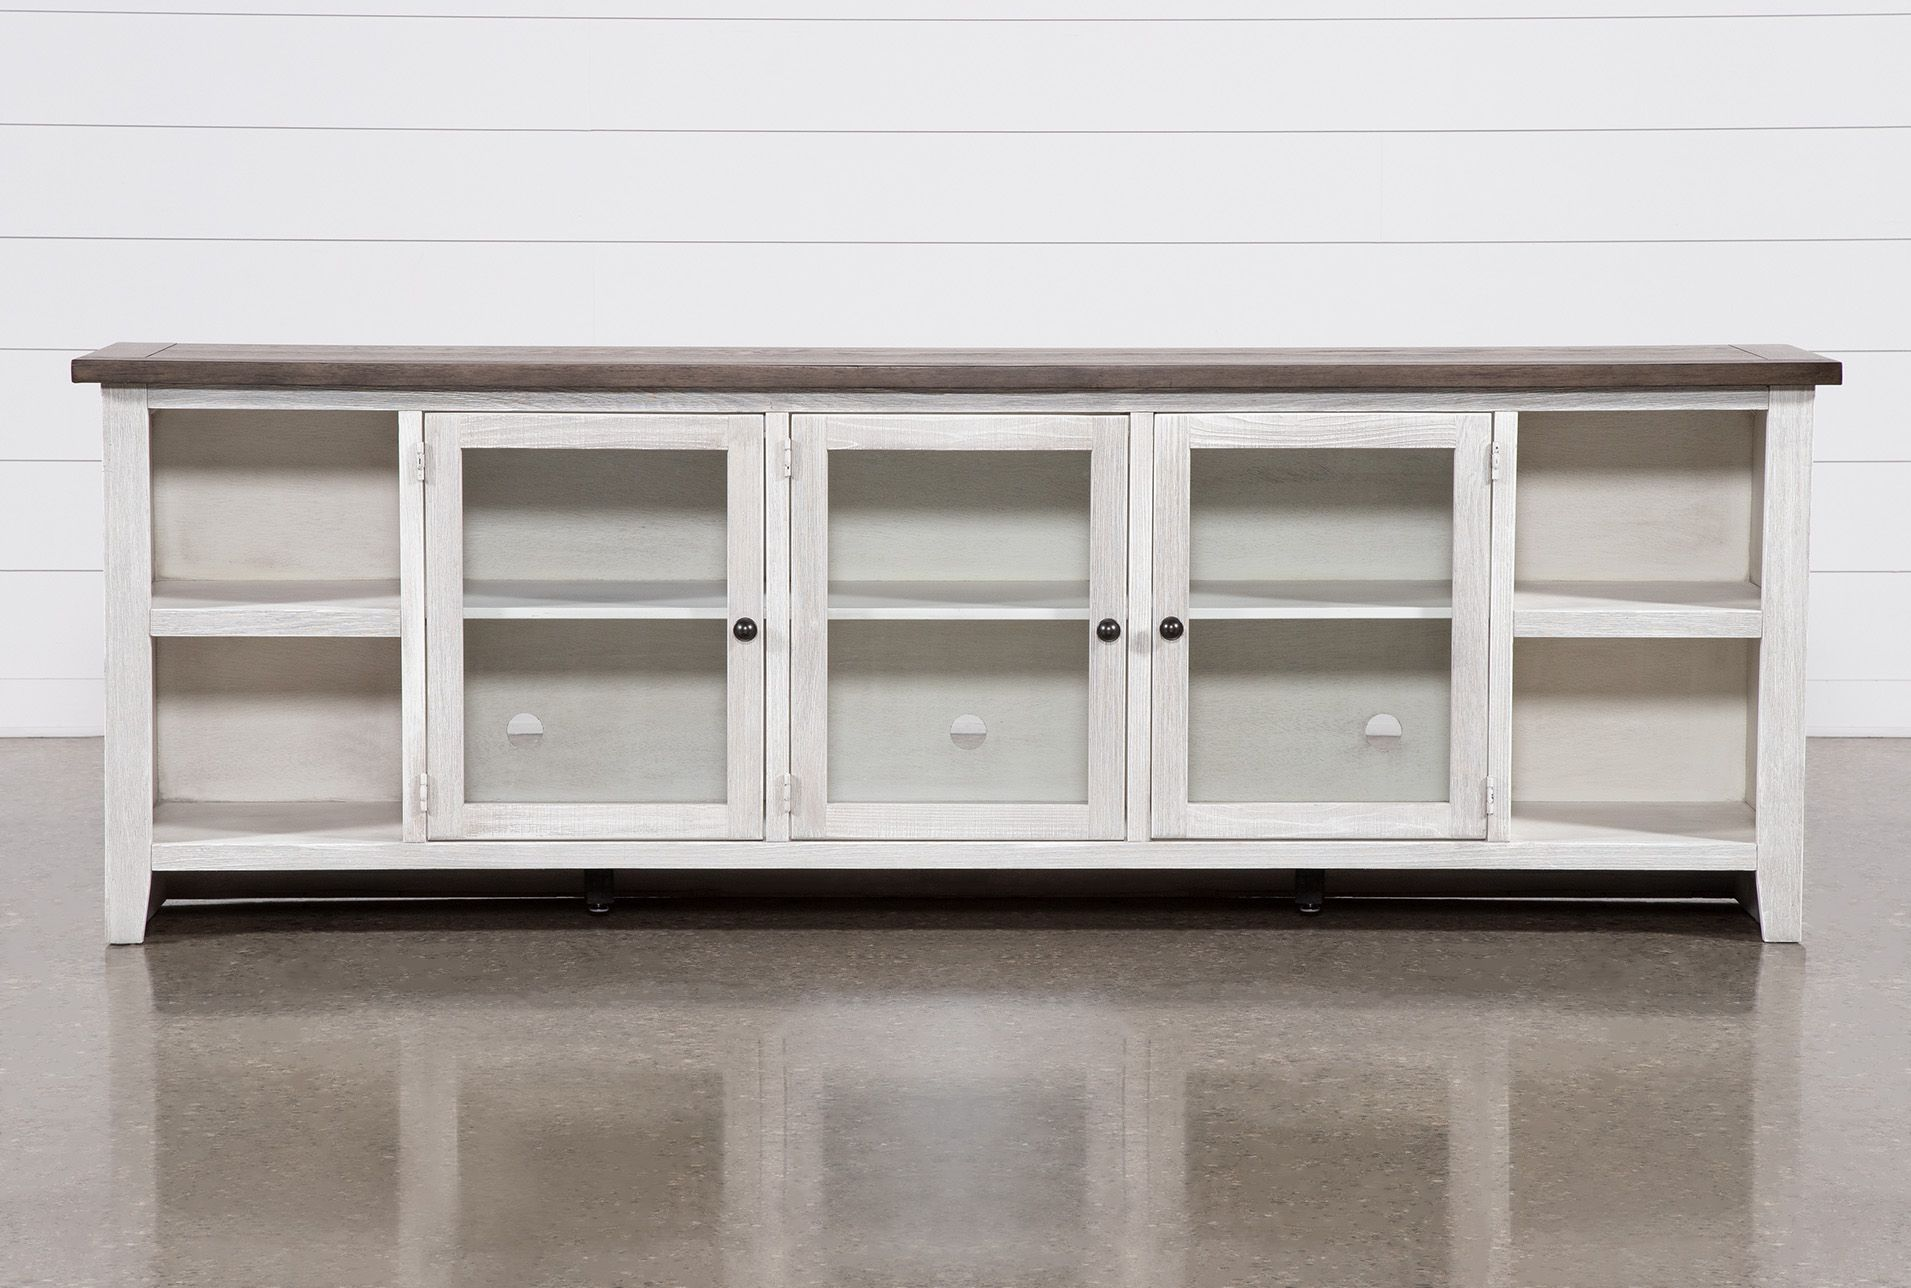 Dixon White 97 Inch Tv Stand With Glass Doors Tv Stand With Glass Doors Tv Stand Living Spaces White Tv Stands Tv stands with glass doors